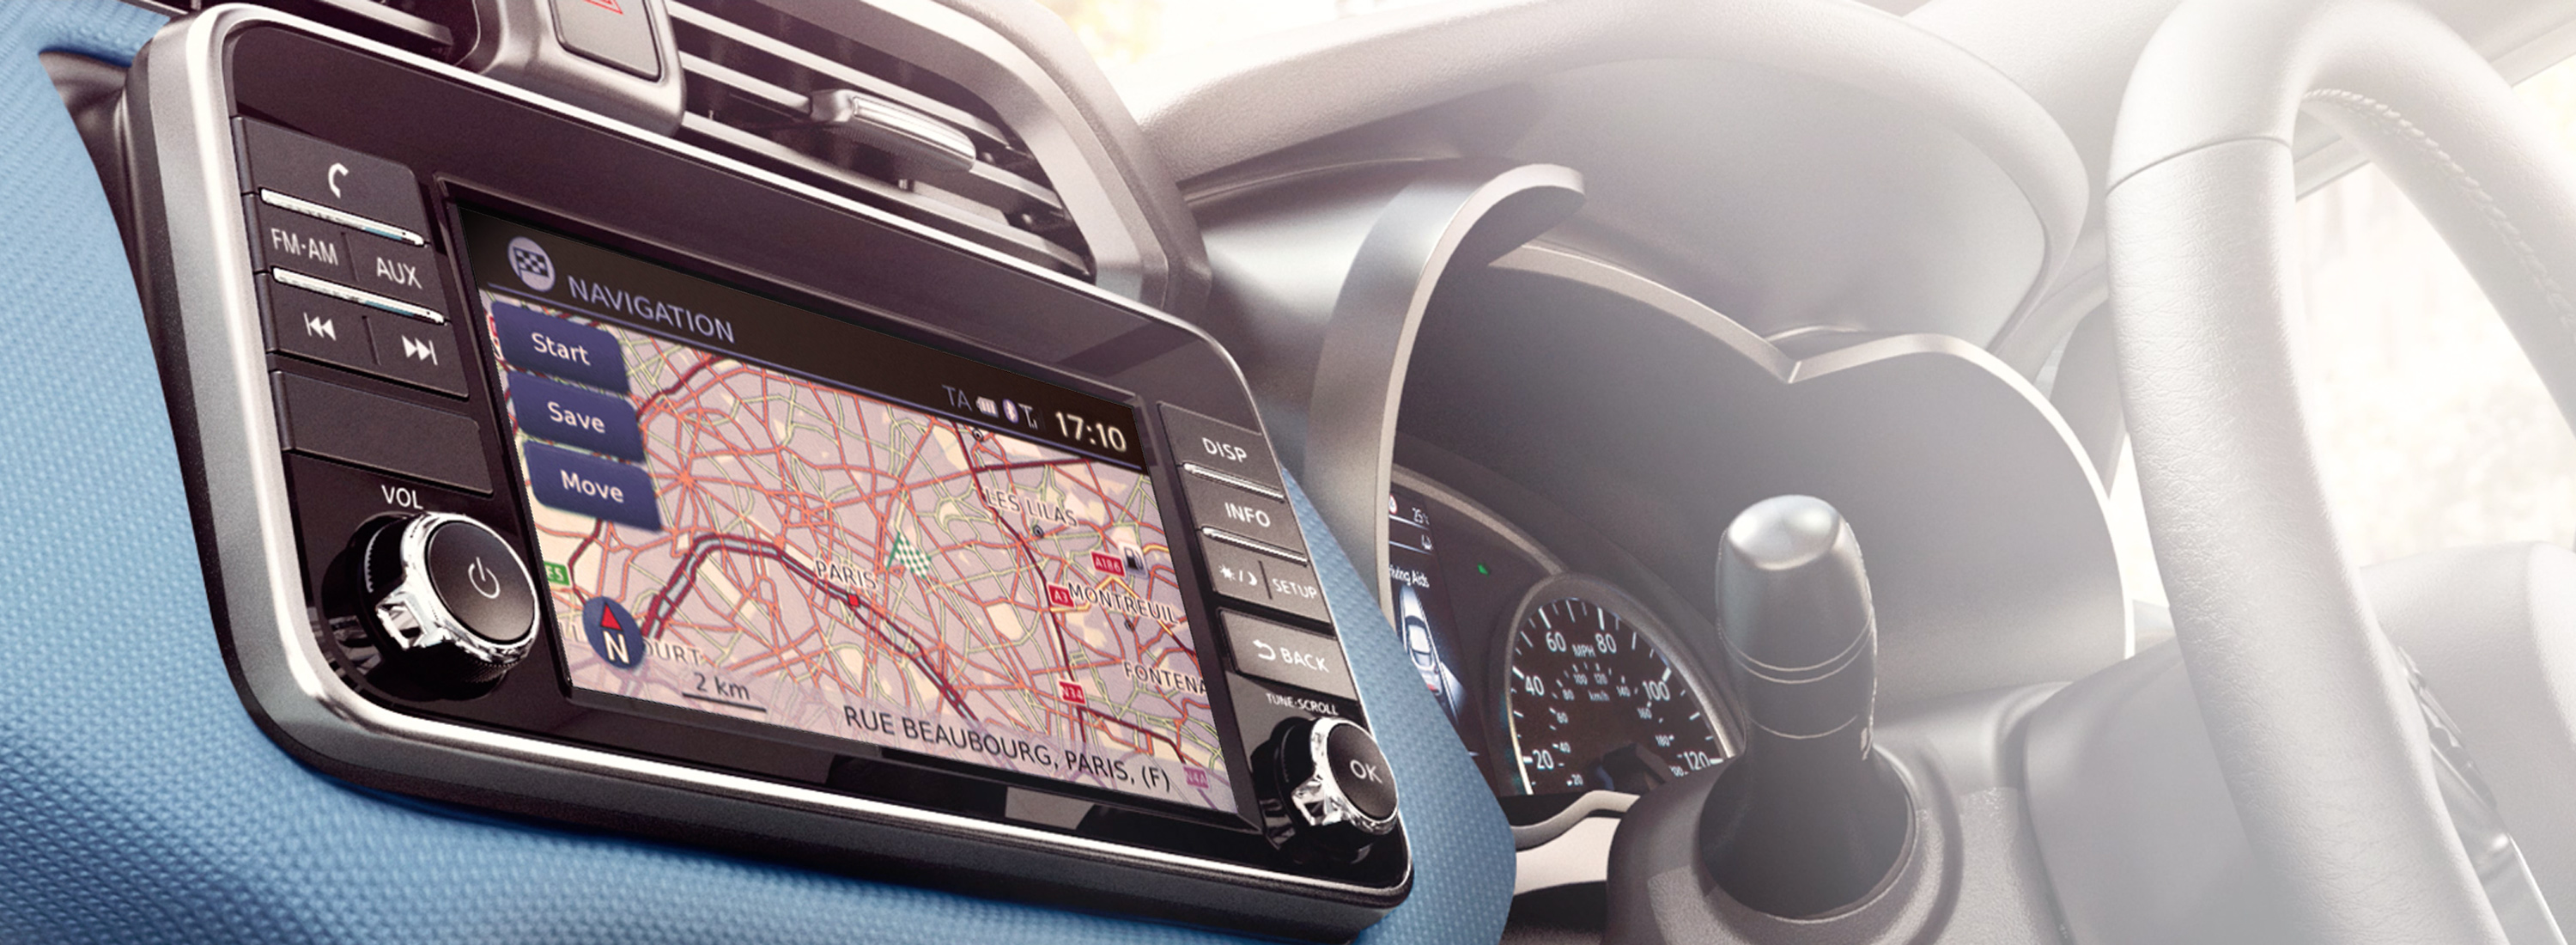 Nissan Micra 7-inch touch screen